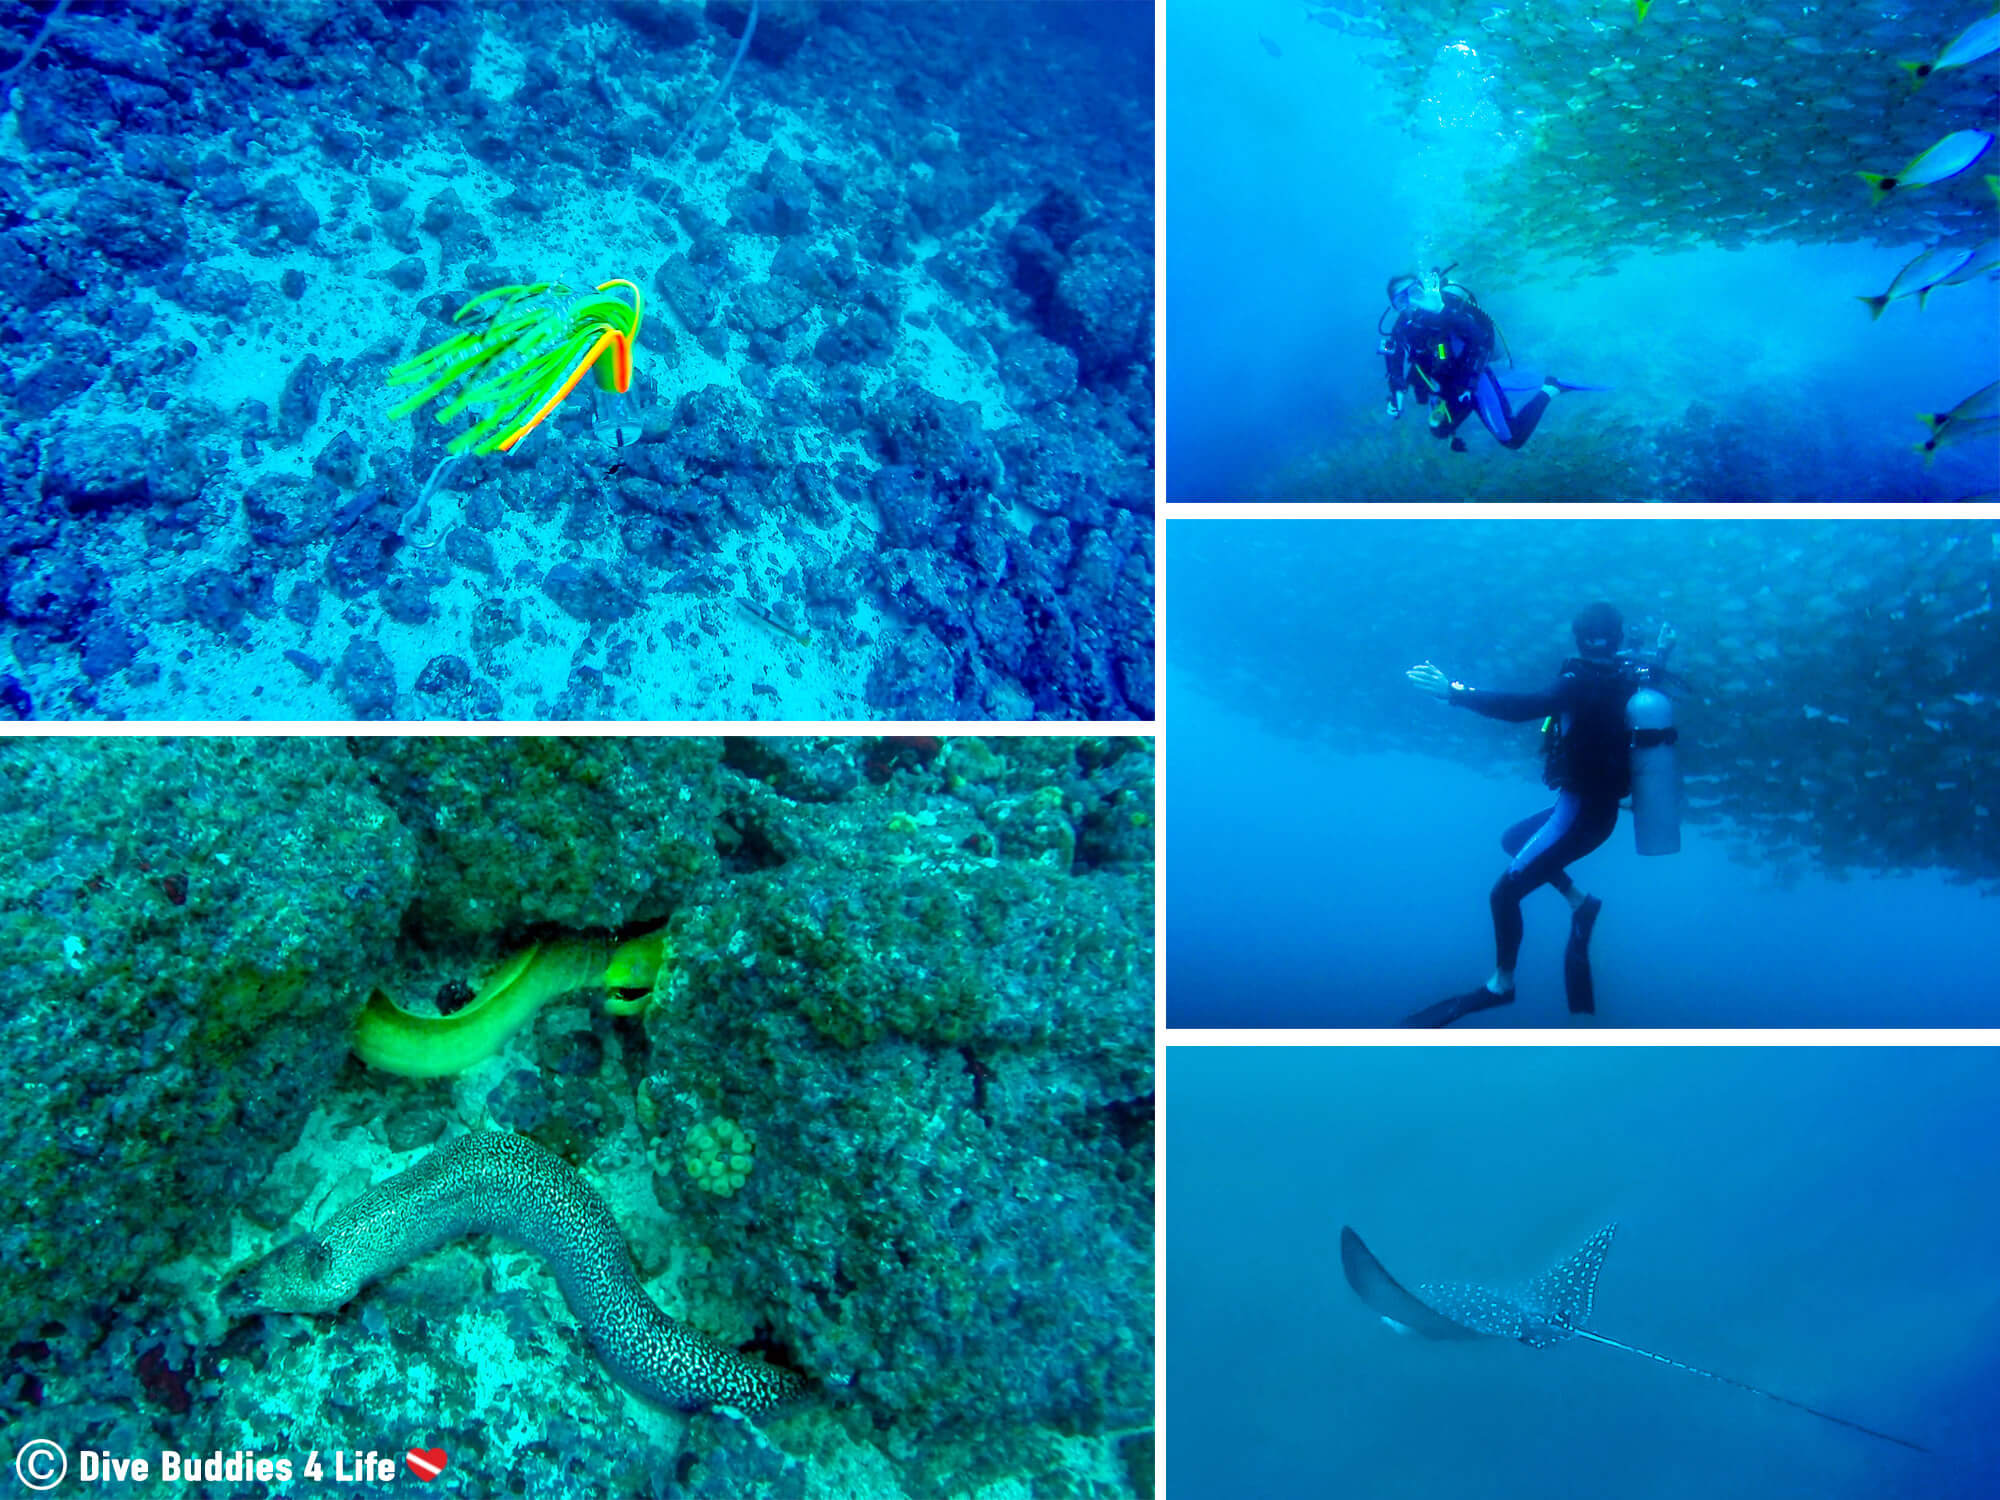 Bat Islands Marine Fauna Sightings While Scuba Diving In Costa Rica